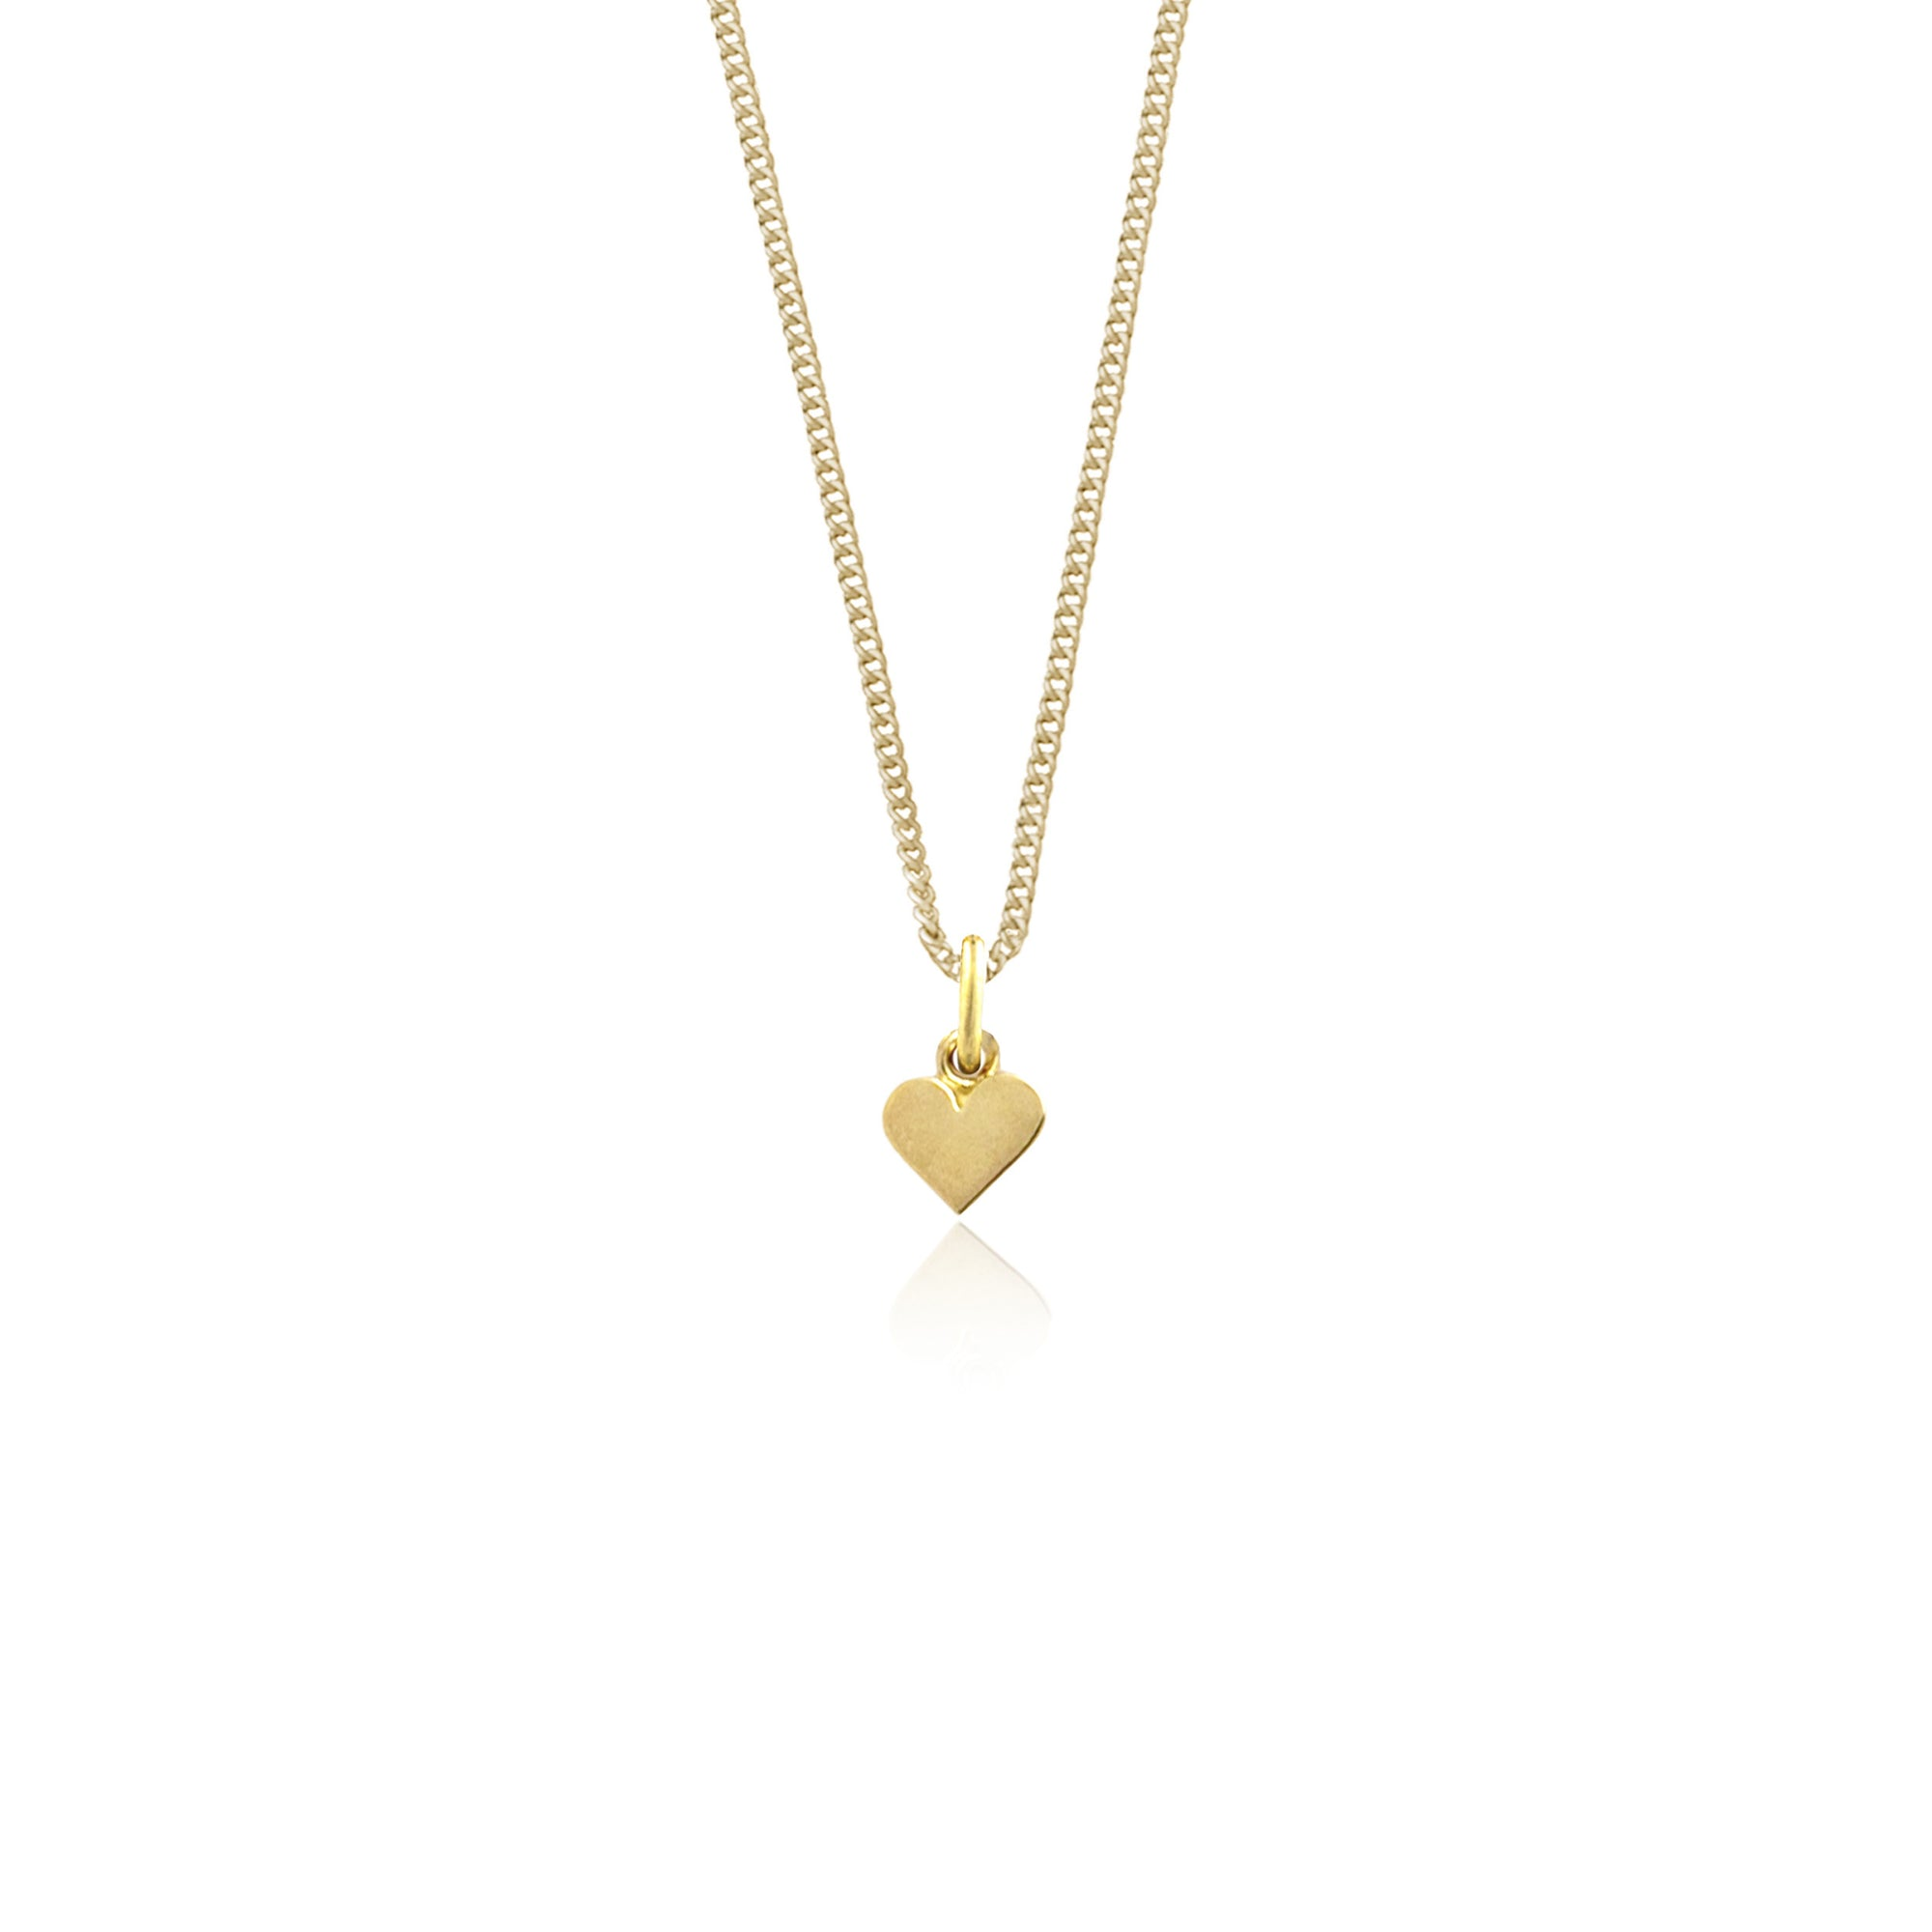 SOLID GOLD - Single Heart of Gold Necklace